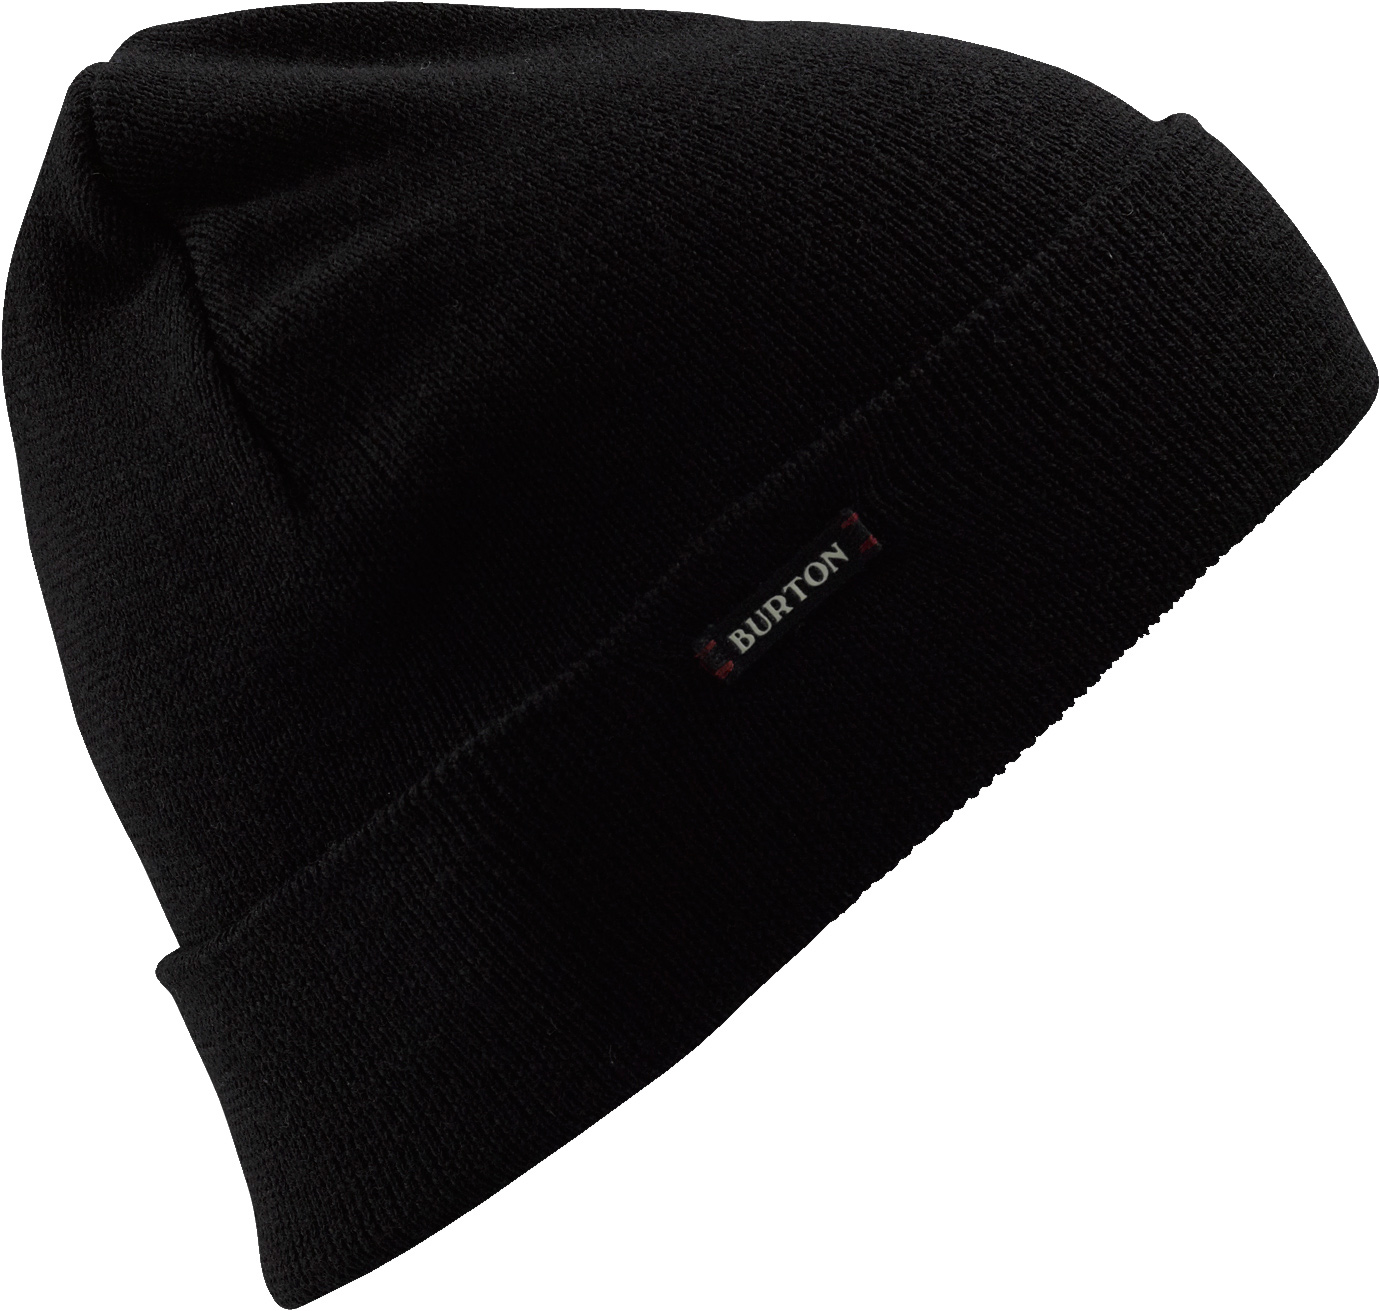 Snowboard Key Features of the Burton Backhill Beanie: 100% Merino Wool with Acrylic Lining Fine Rib Knit Fold Up with Skully Fit - $35.00